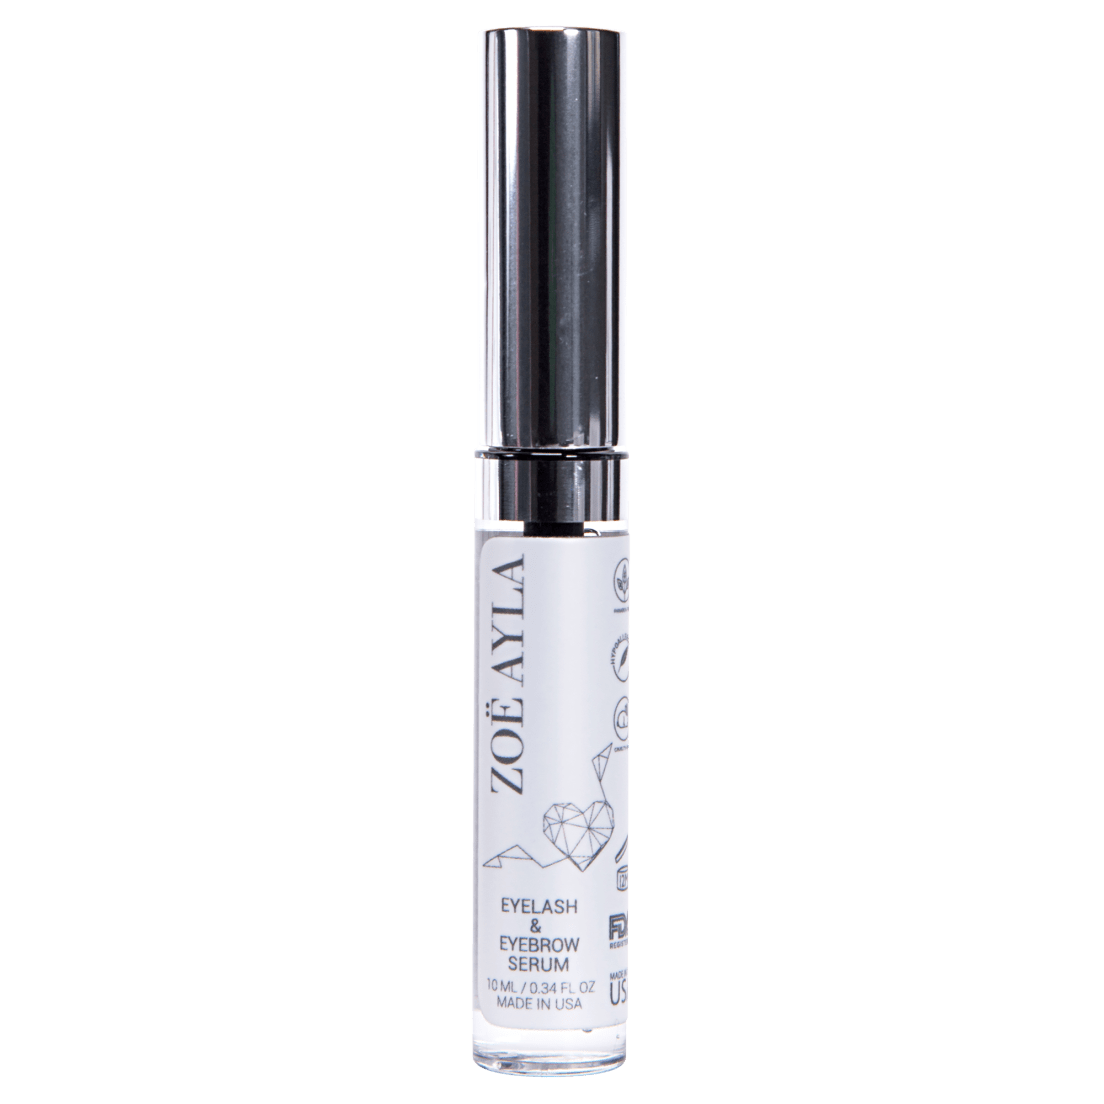 88025866689 Zoe Ayla Premium Eyelash and Brow Growth Serum